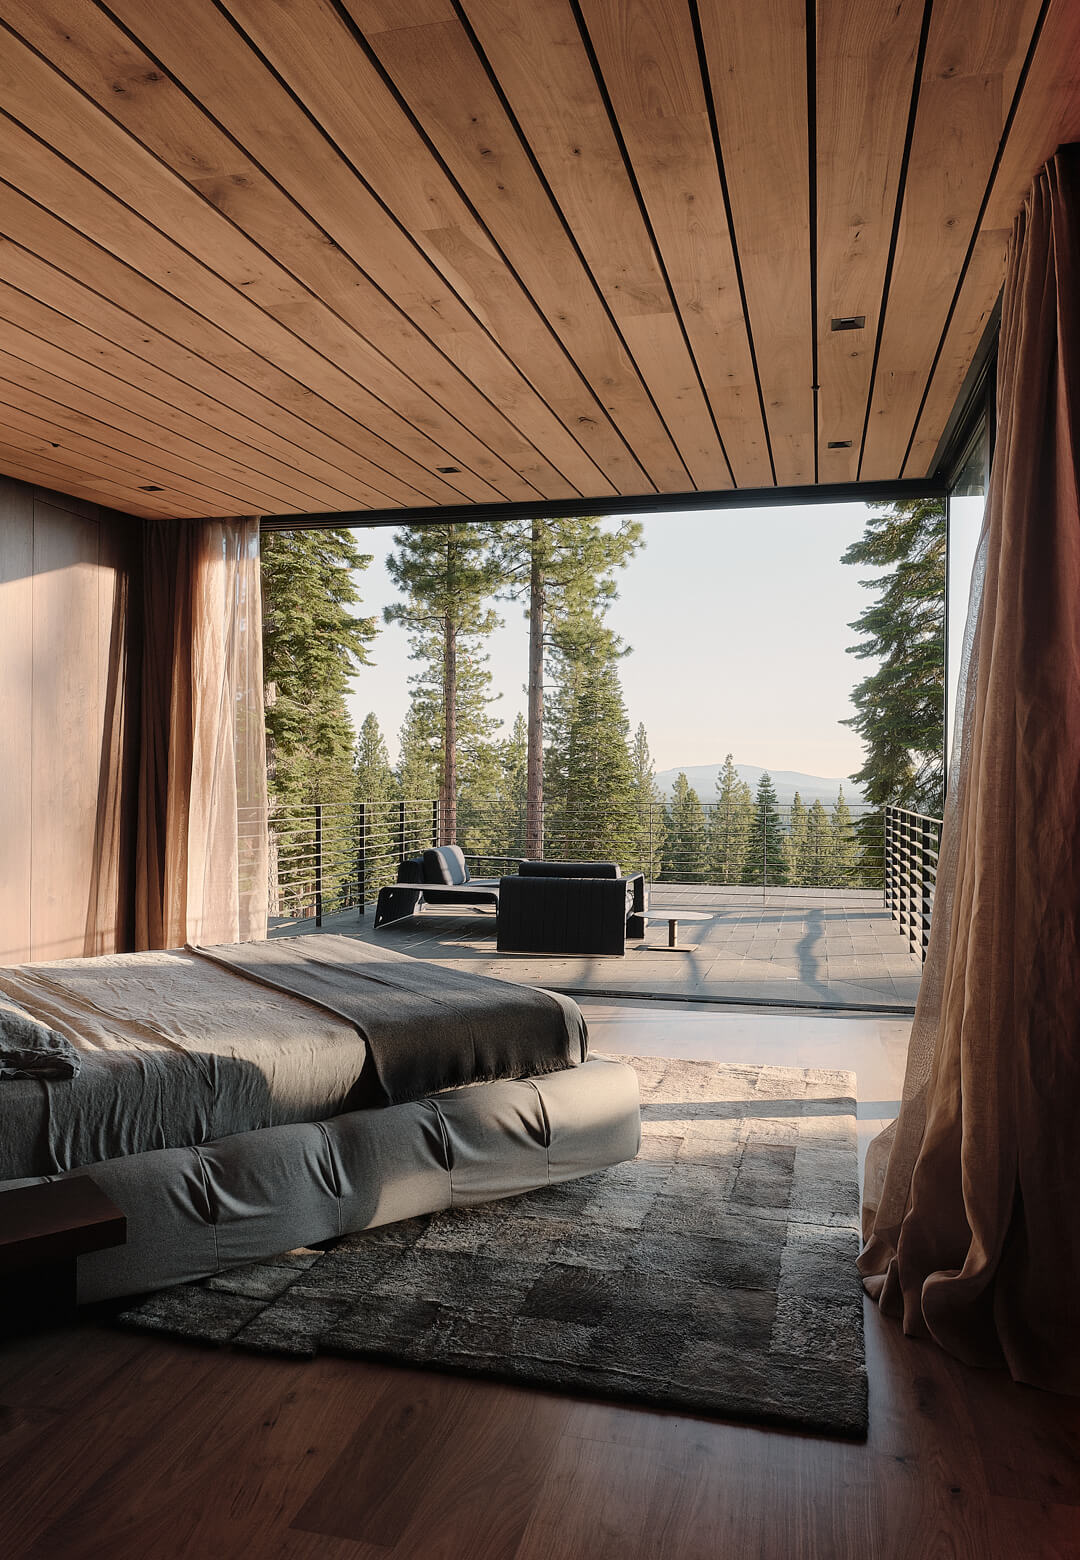 Inside the Lookout House designed by Faulkner Architects   Lookout House by Faulkner Architects   STIRworld